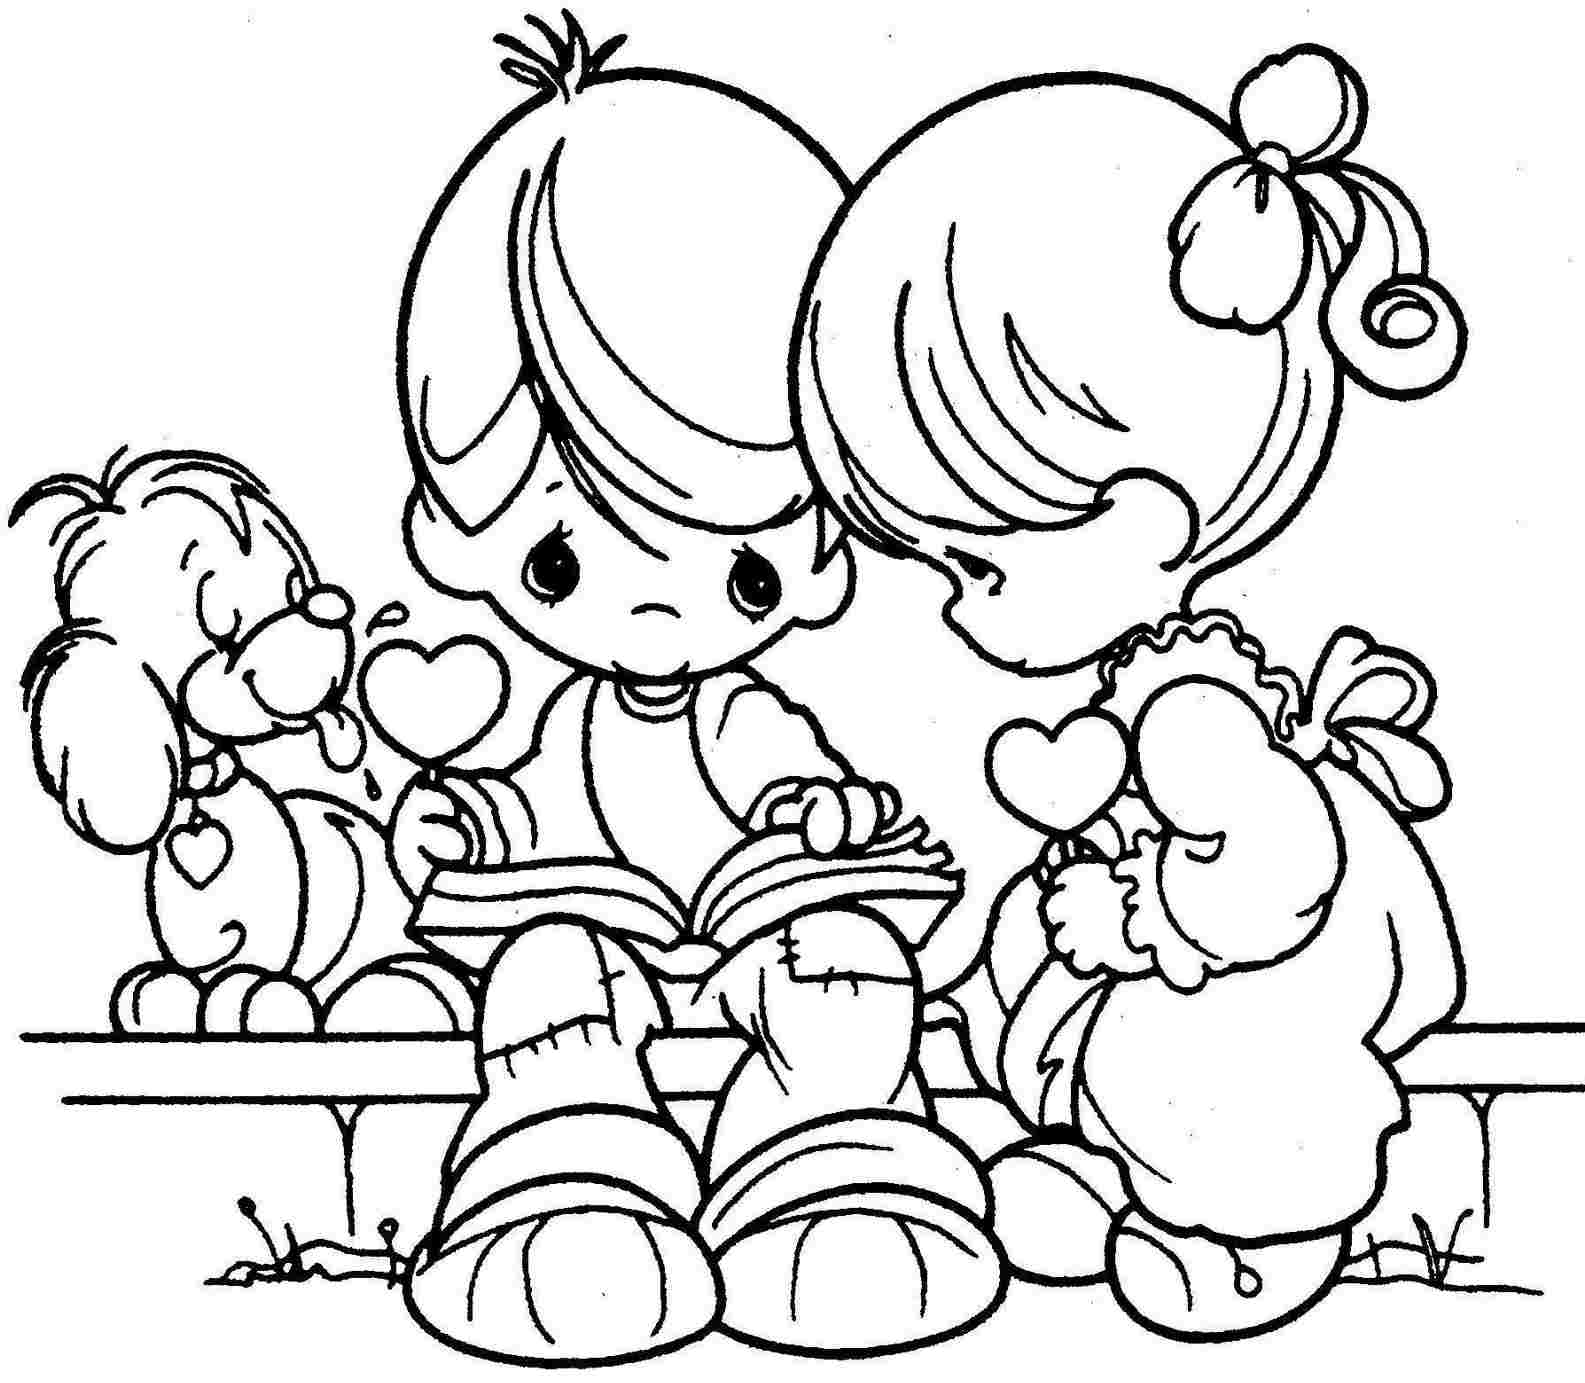 Free valentines day coloring pages to print - Valentines Day Coloring Pages For Kids